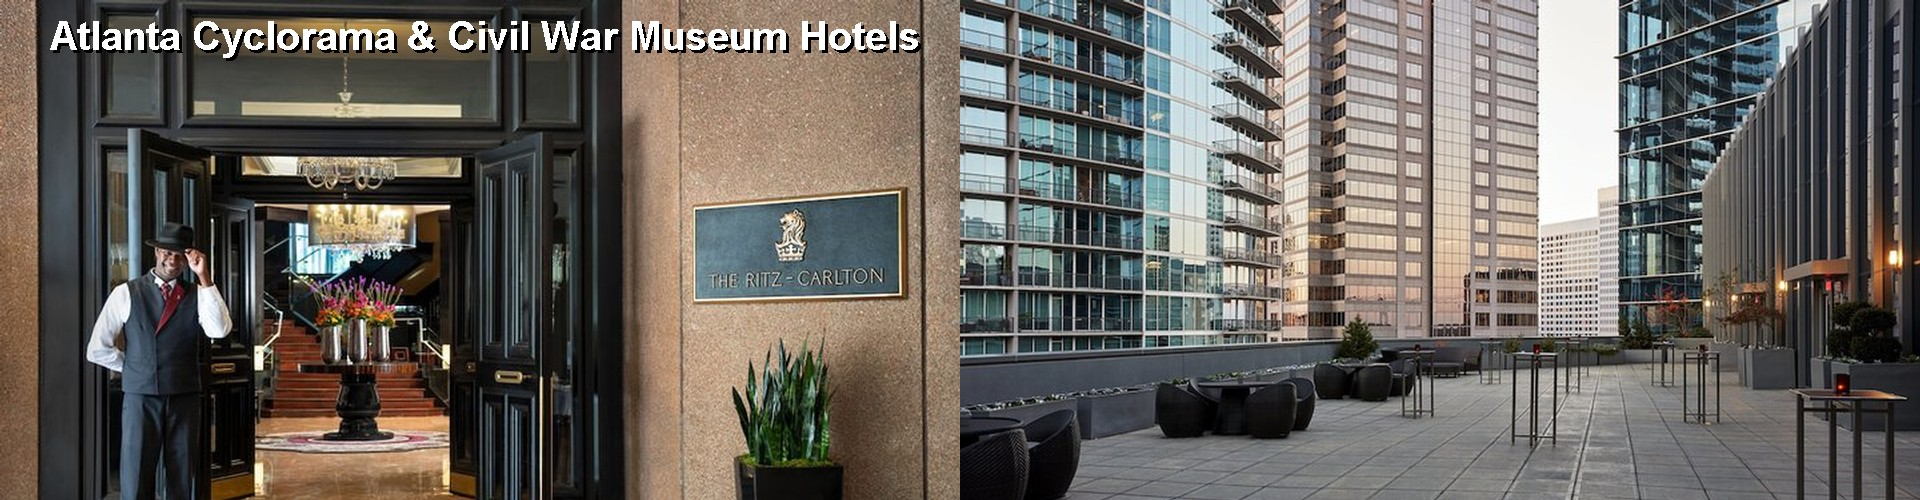 5 Best Hotels near Atlanta Cyclorama & Civil War Museum